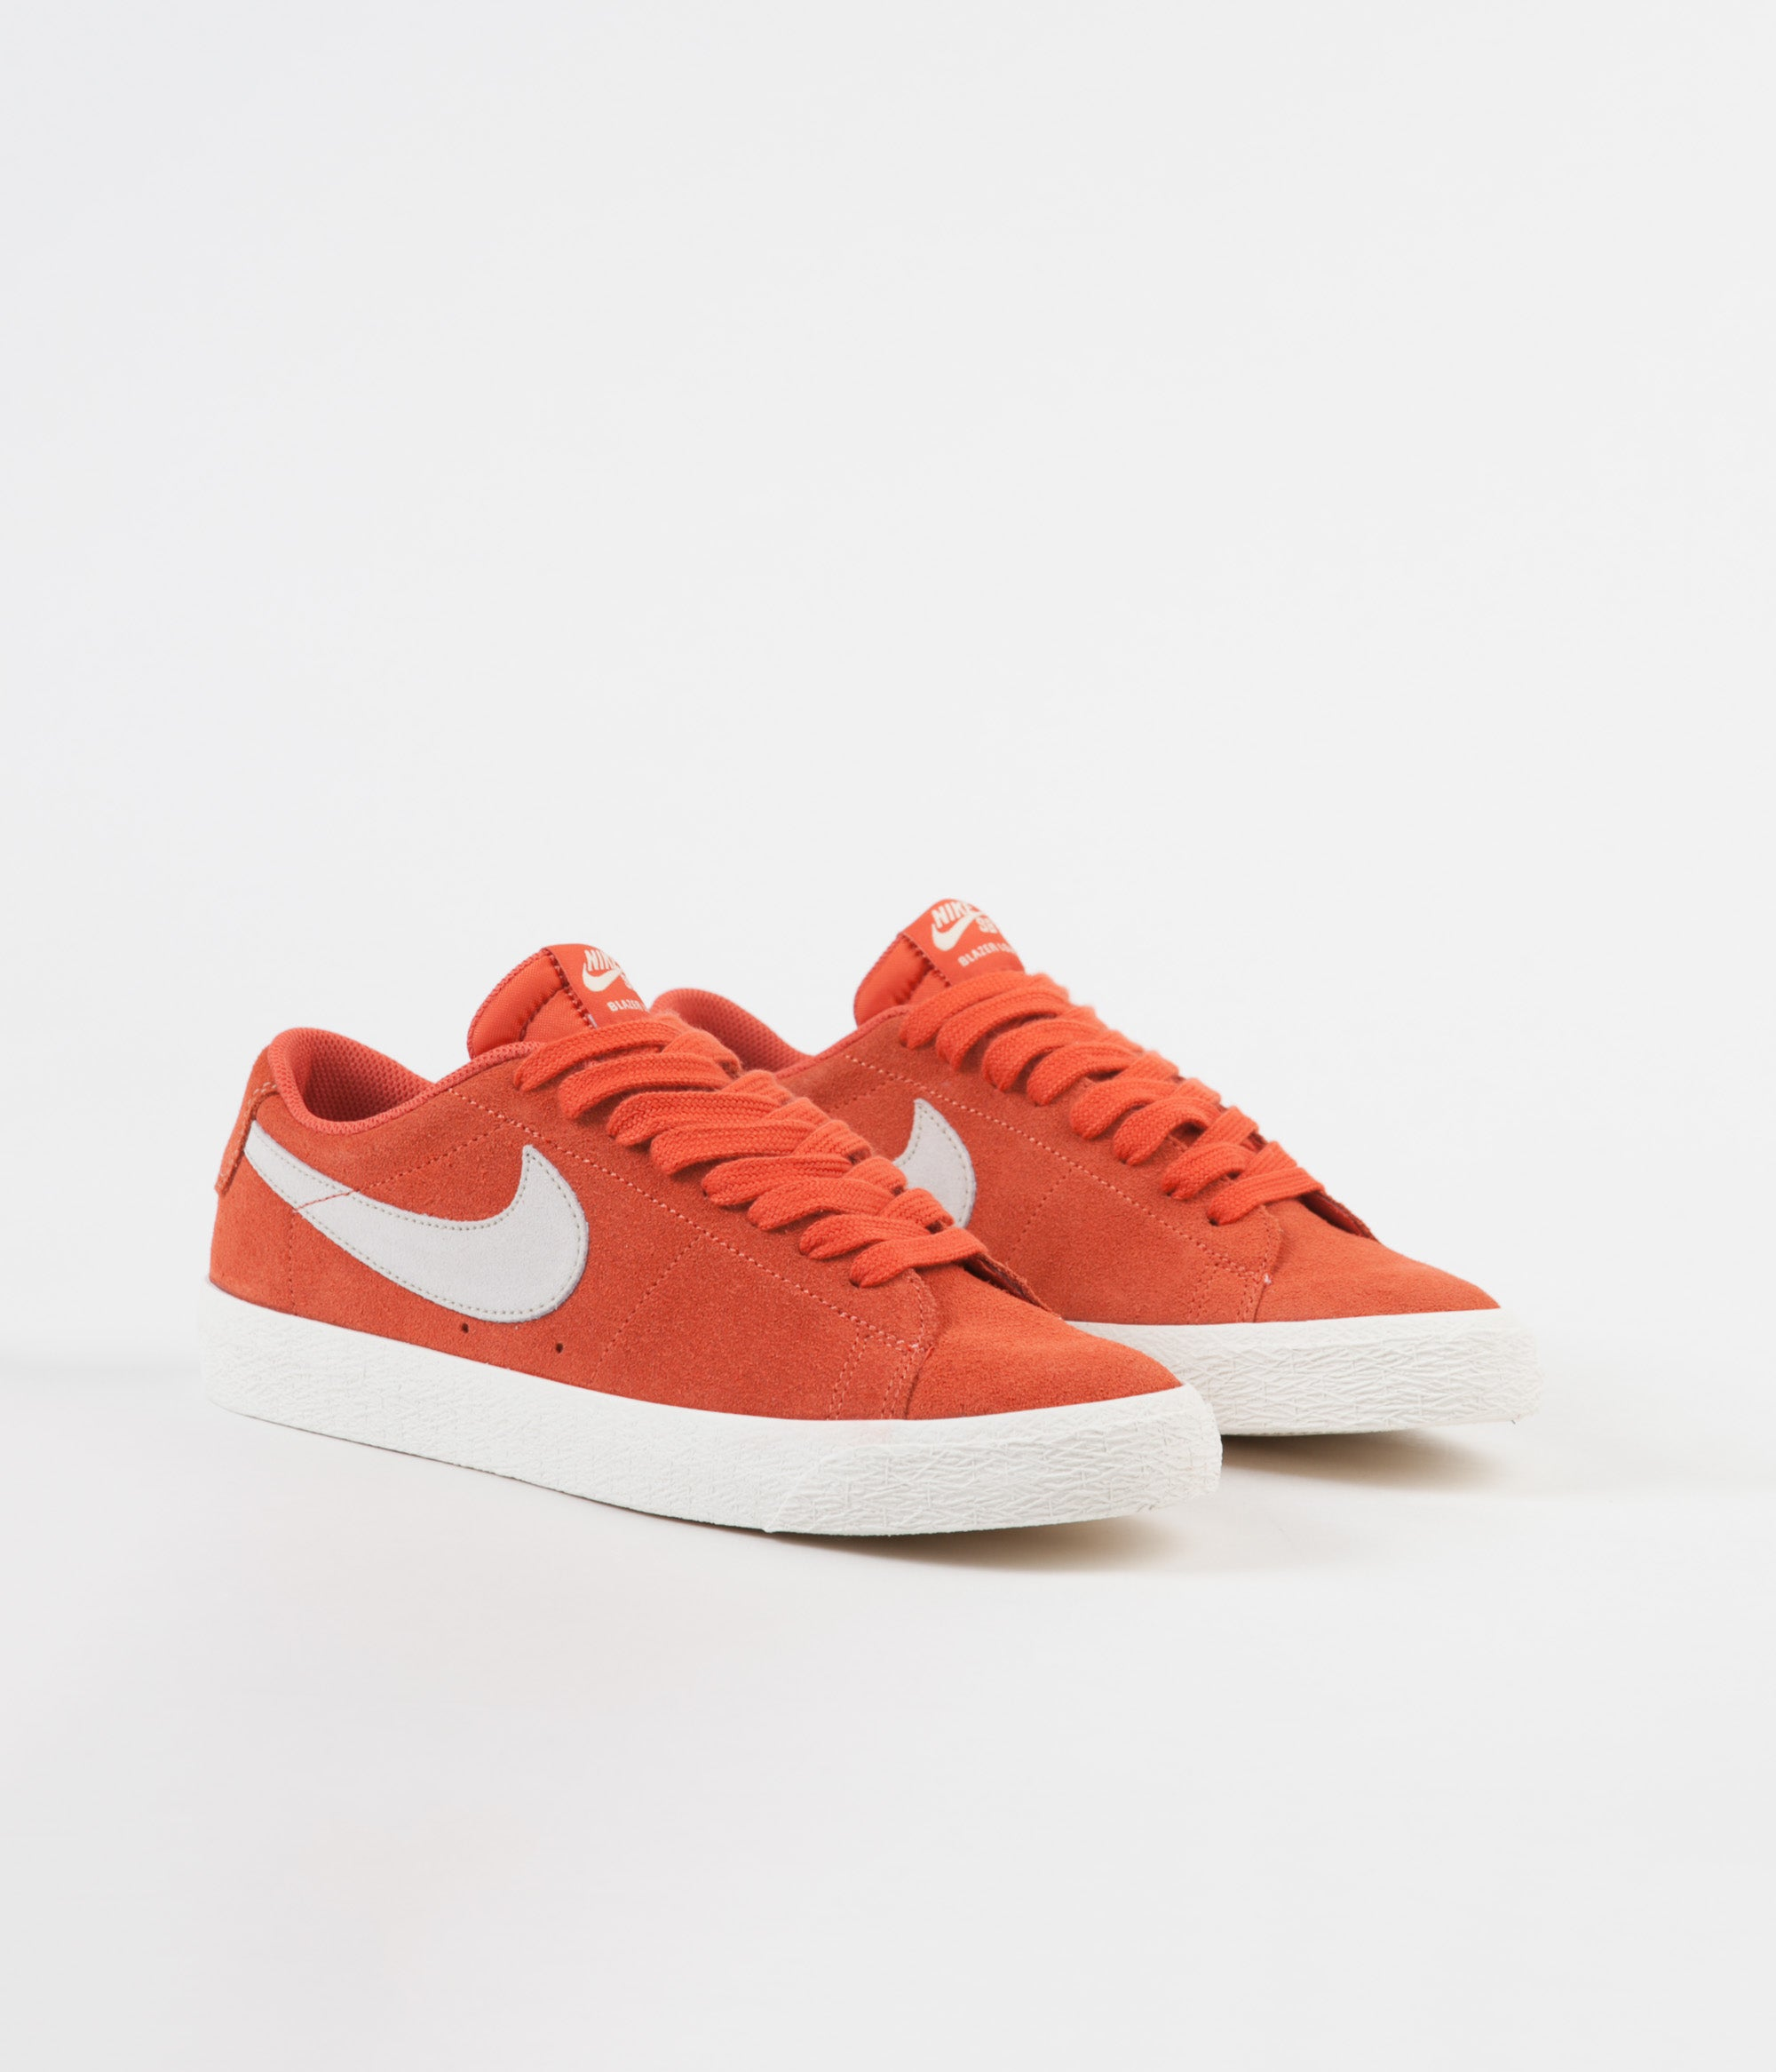 Nike SB Blazer Low Shoes - Vintage Coral / Fossil - Sail